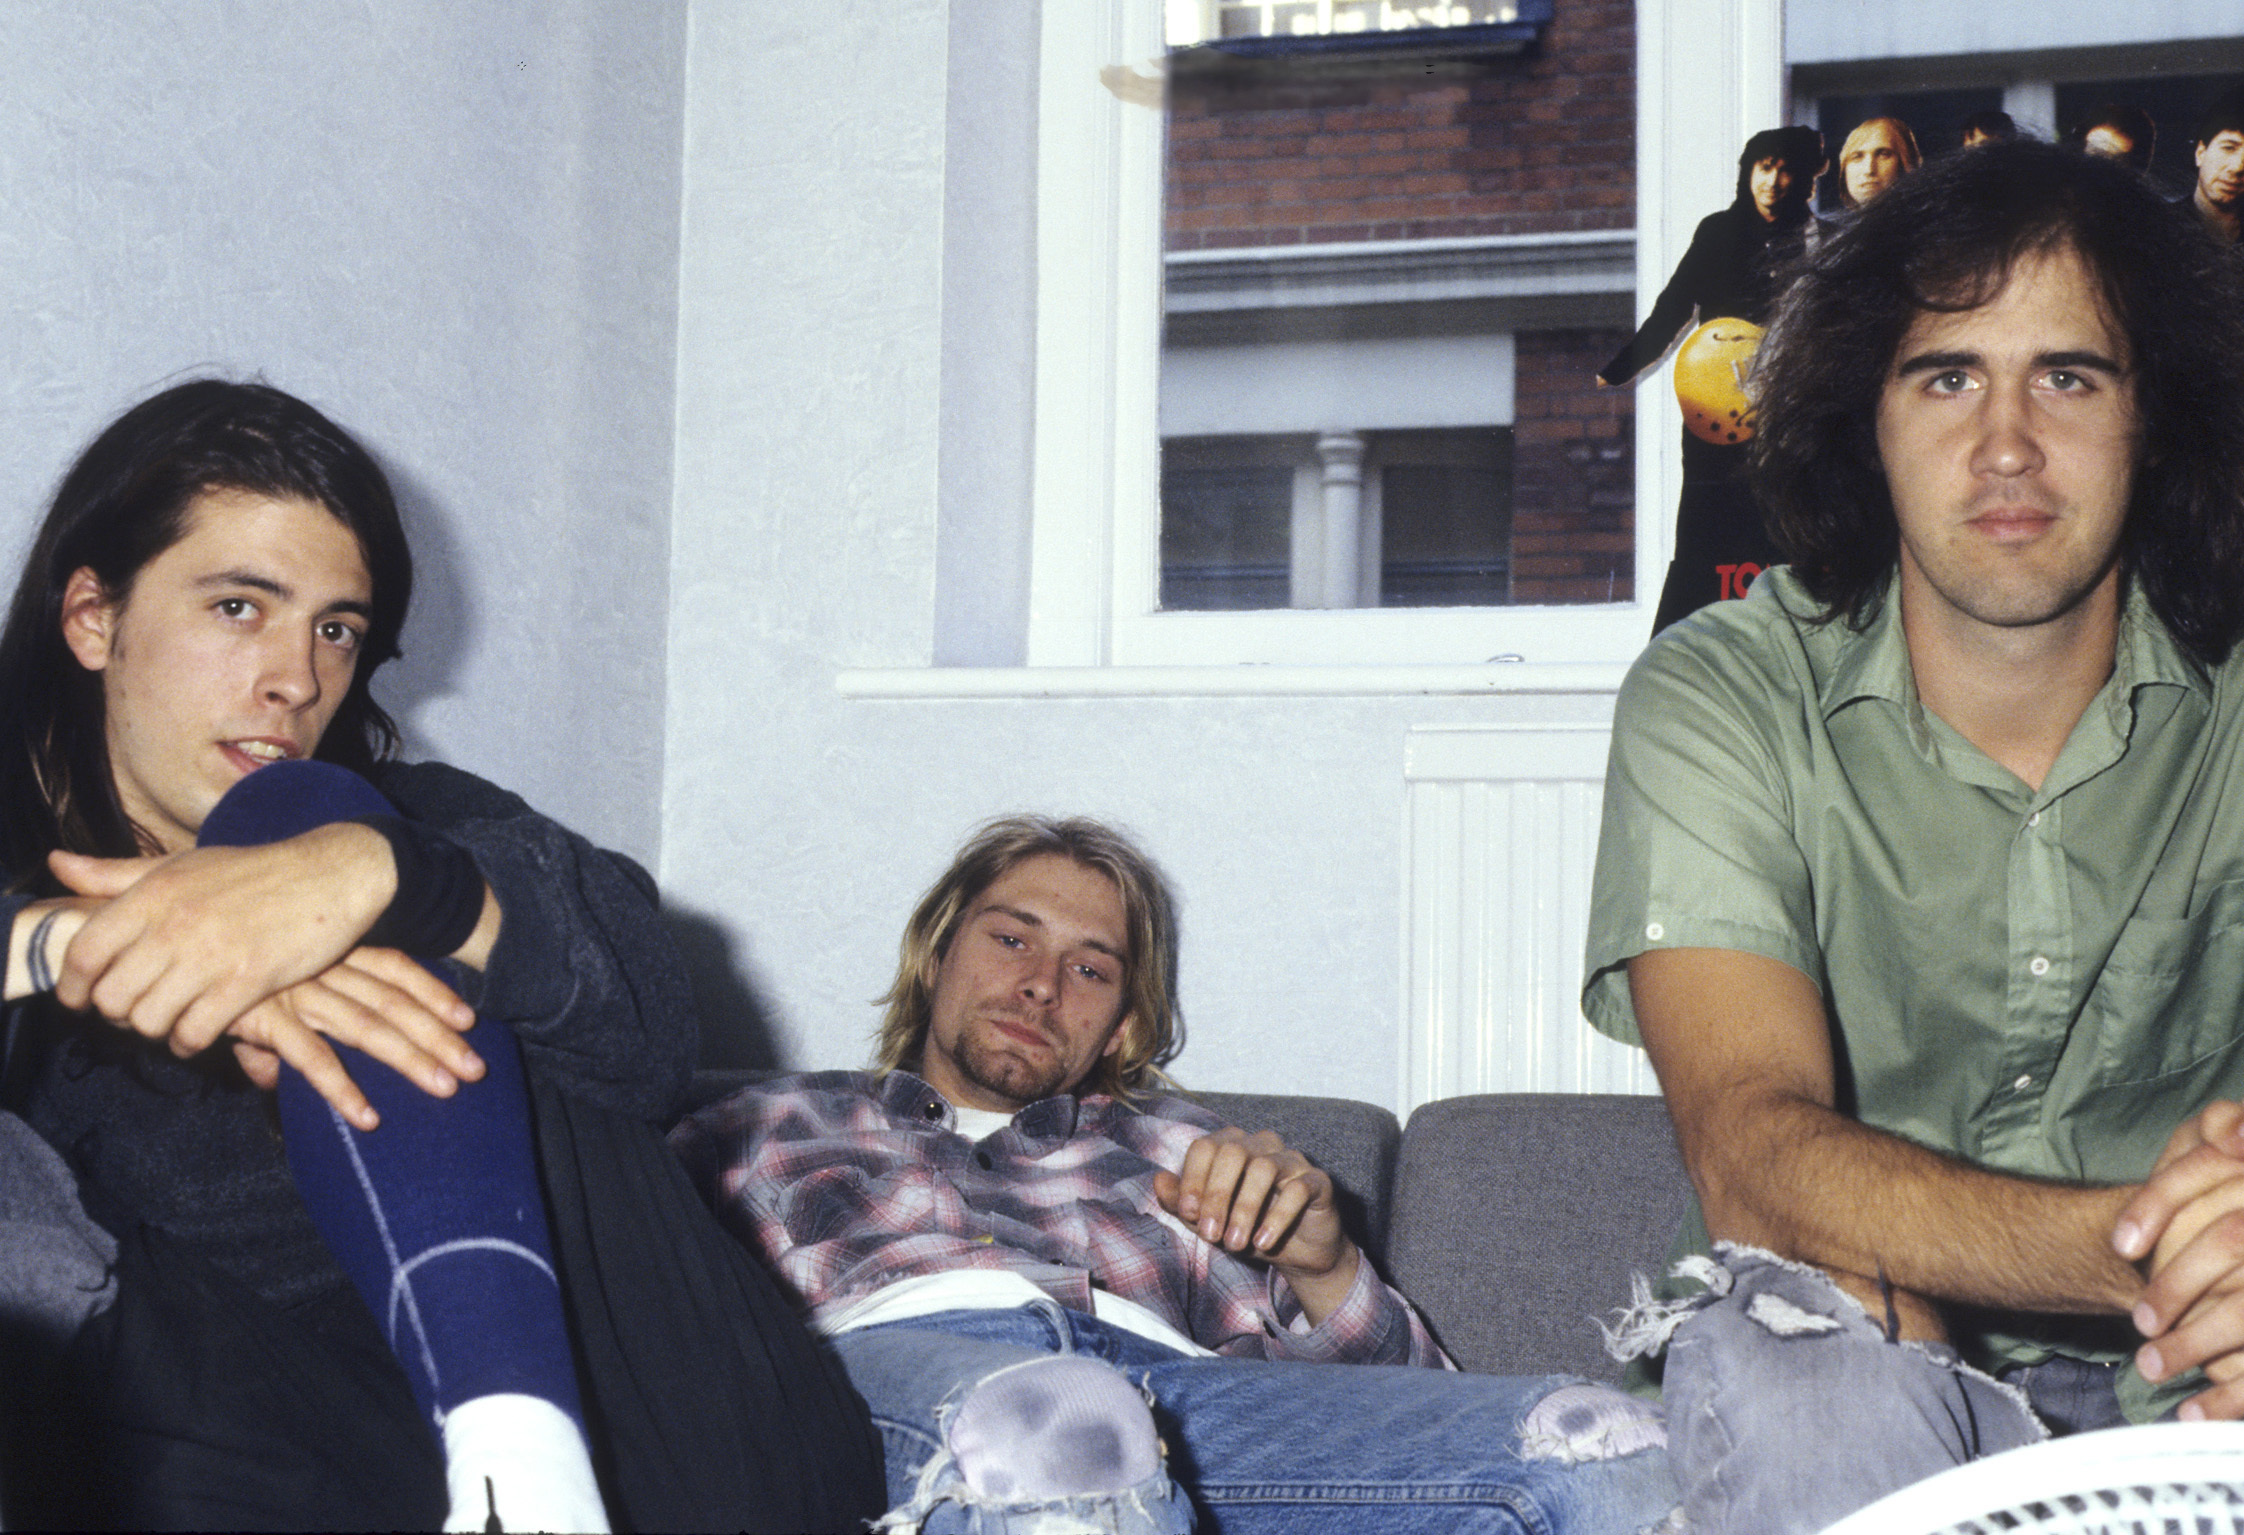 Dave Grohl Kurt Cobain and Kist Novoselic in Nirva